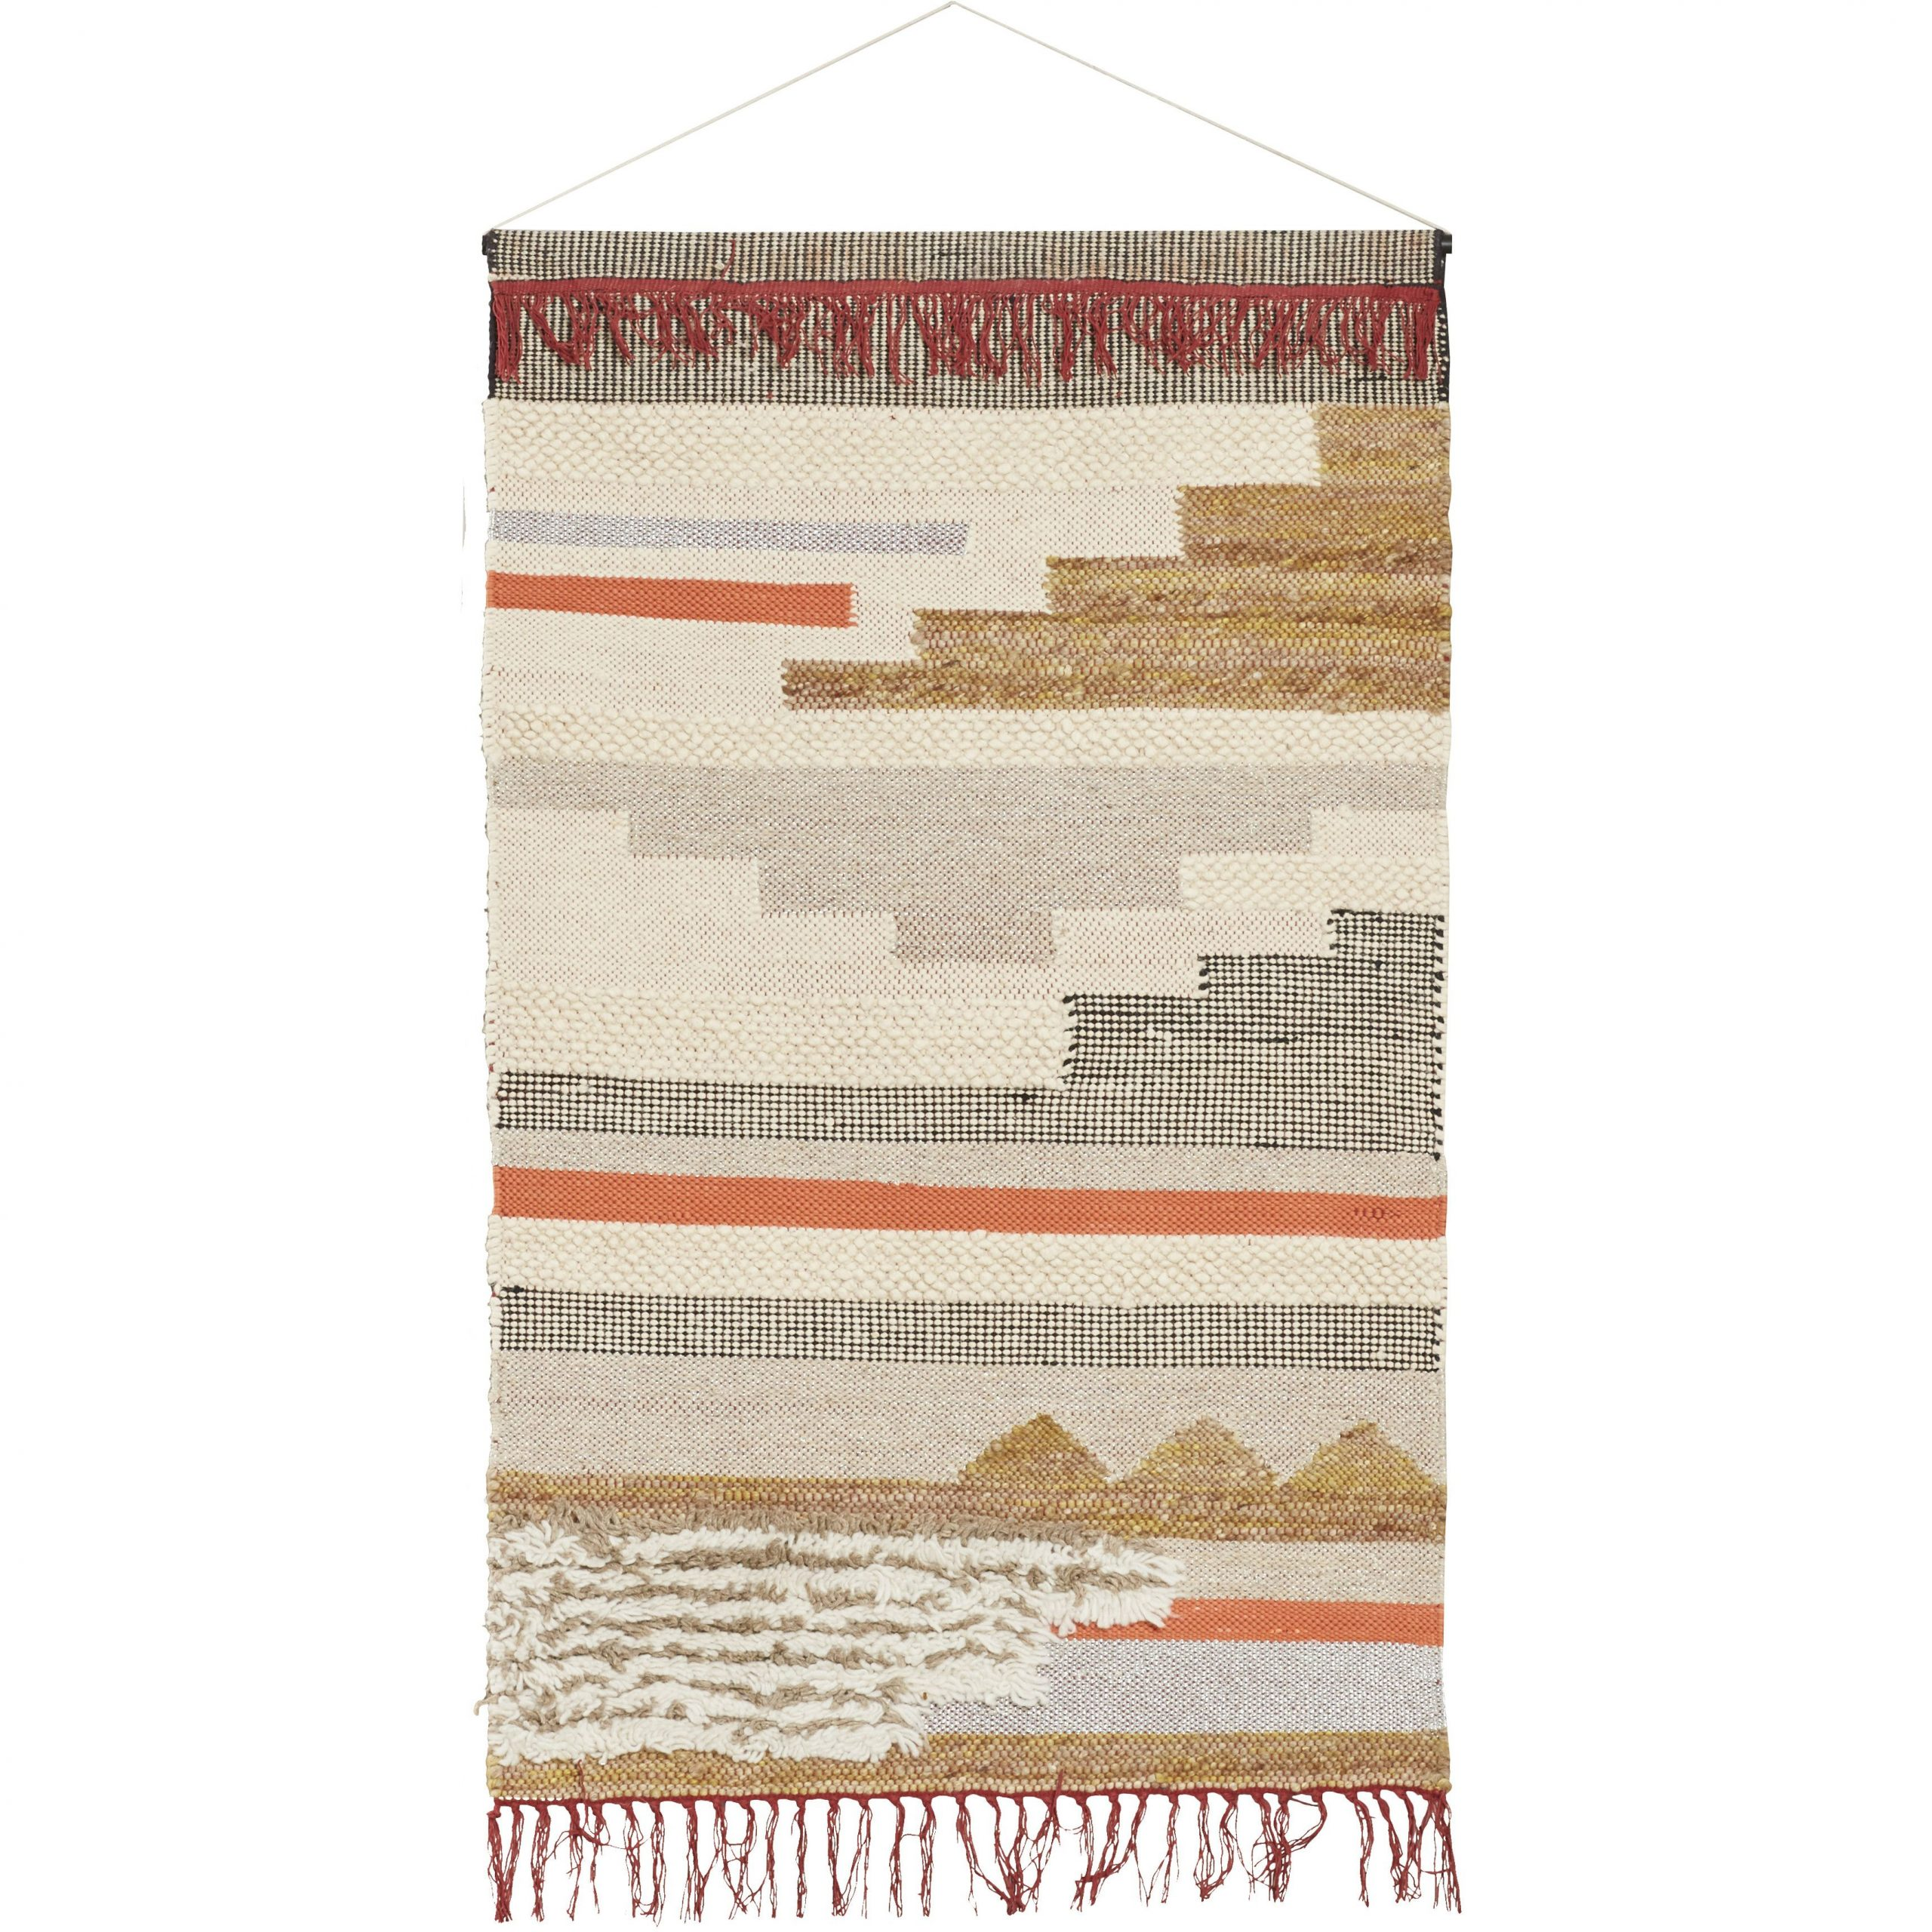 Blended Fabric Wall Hanging With Hanging Accessories Intended For Latest Blended Fabric Wall Hangings (View 5 of 20)